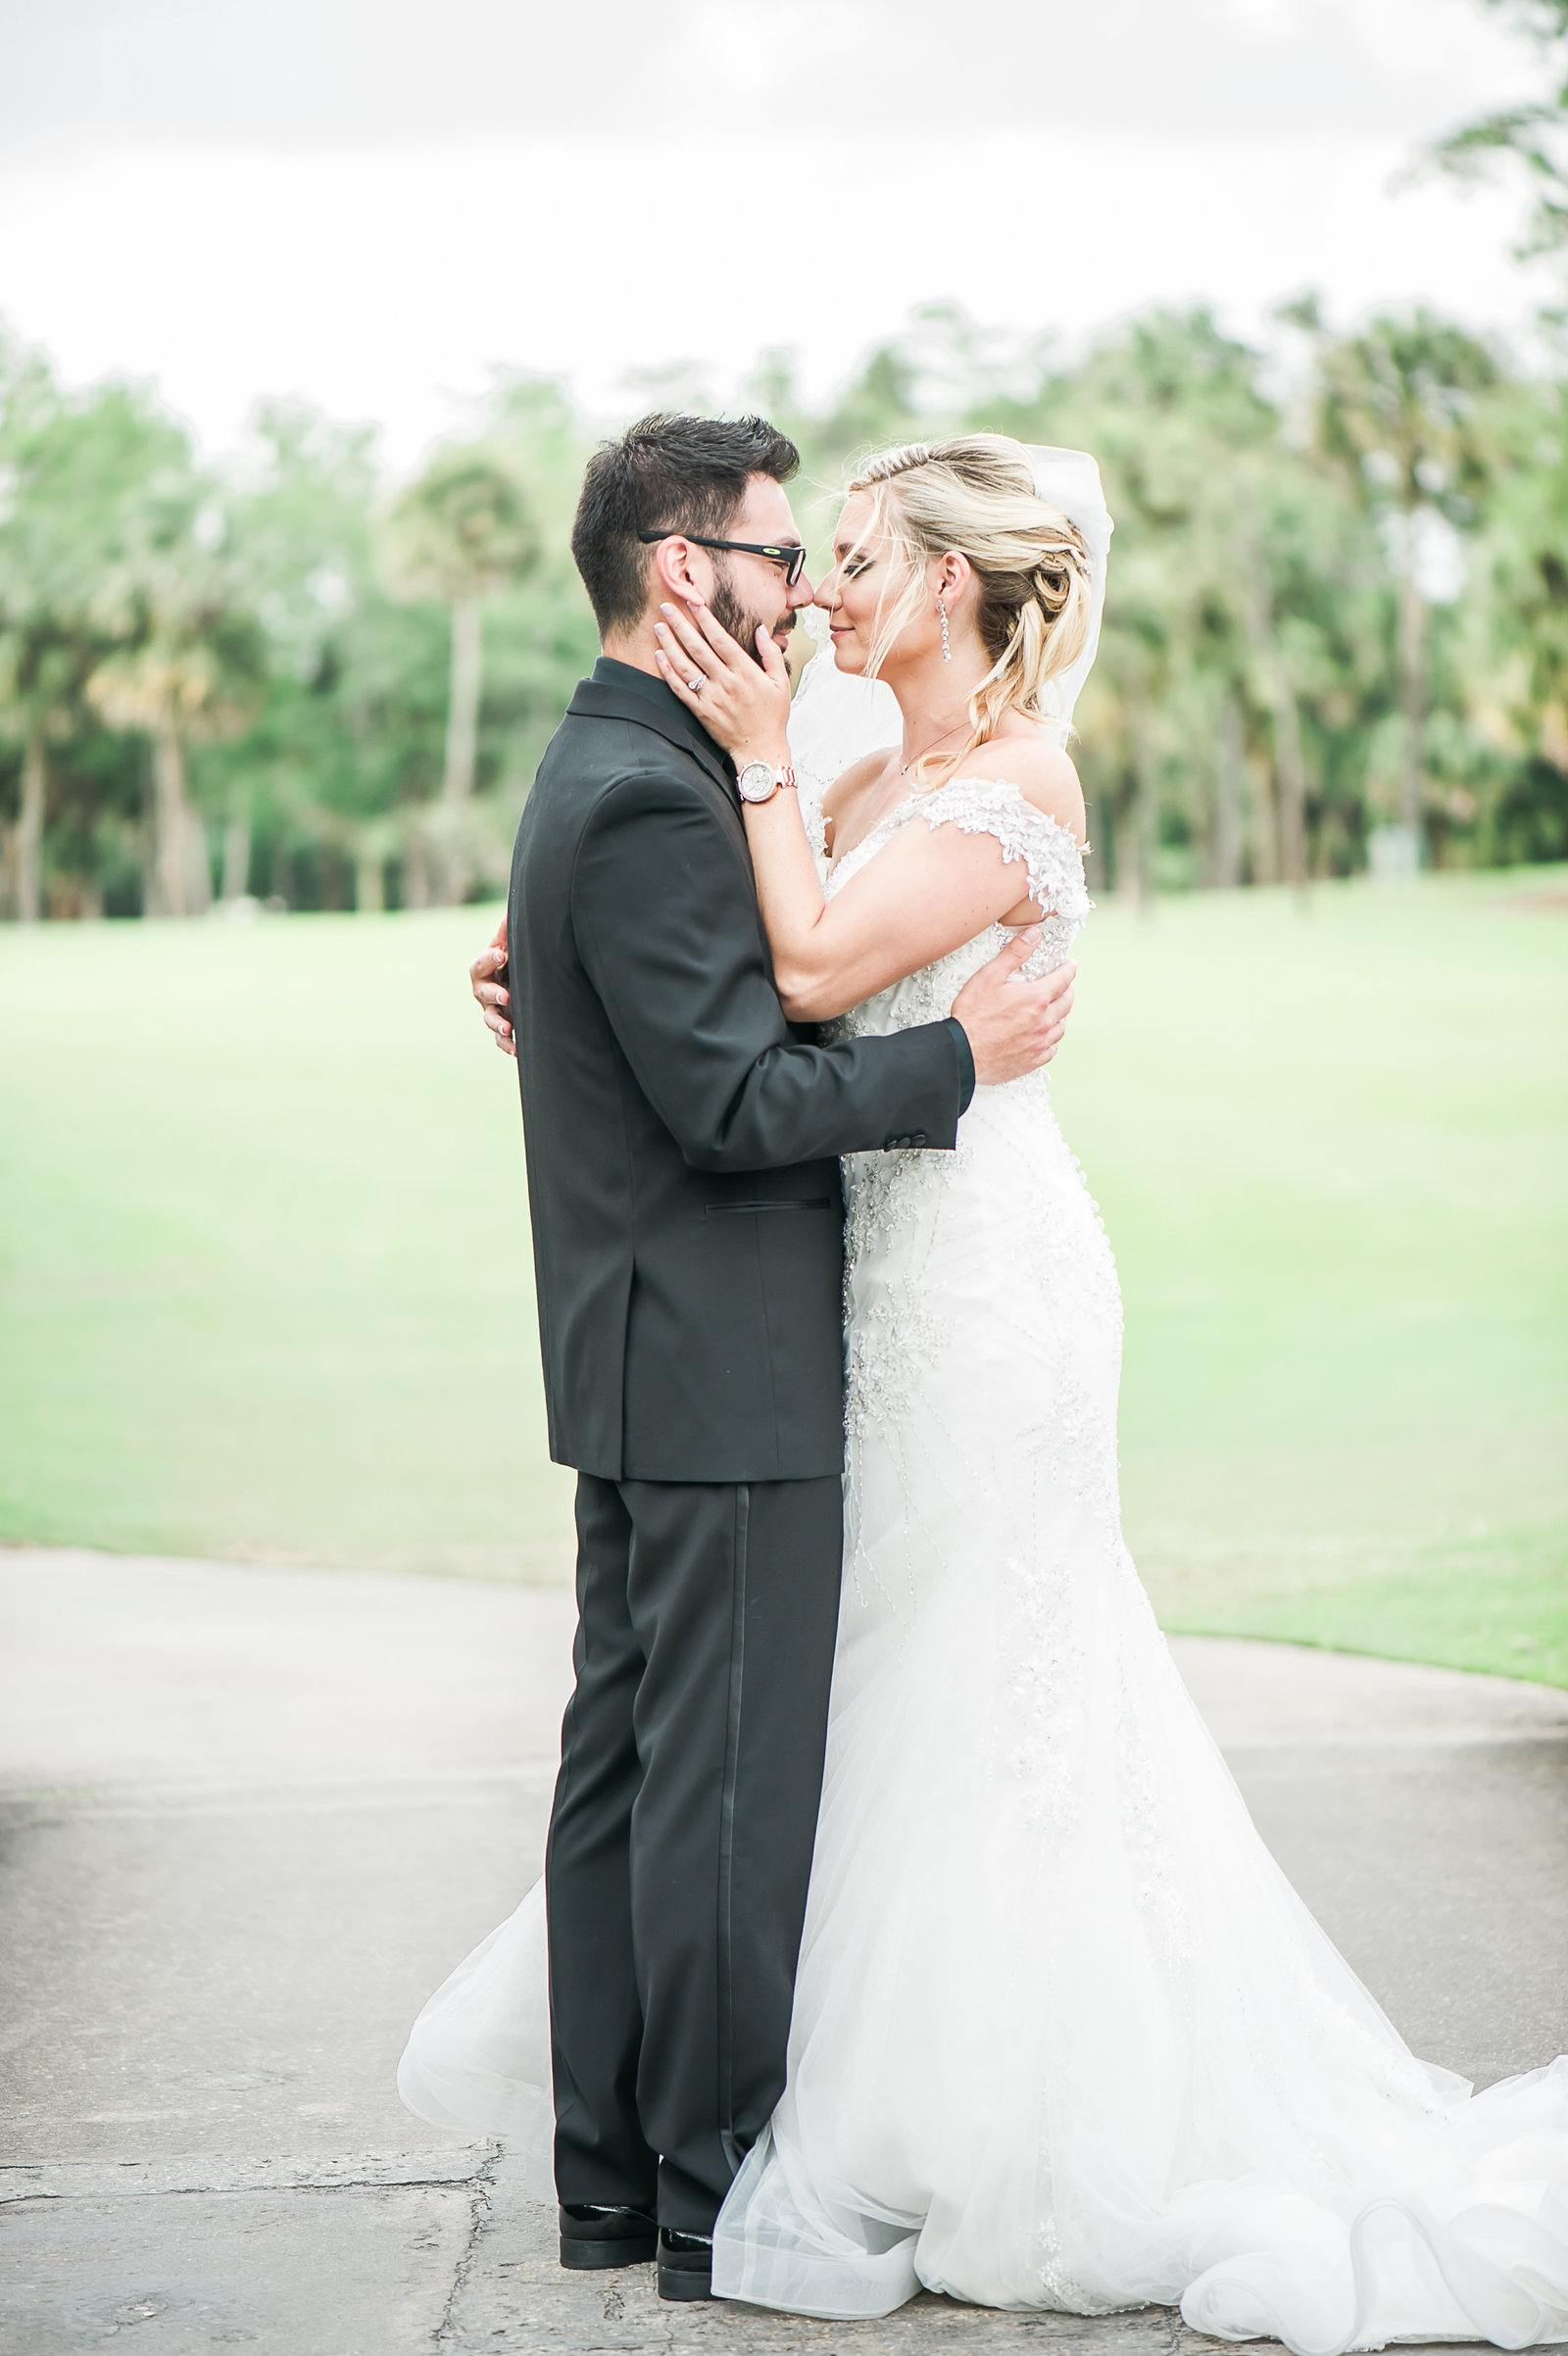 Kissing Bride and Groom - Myacoo Country Club Wedding - Palm Beach Wedding Photography by Palm Beach Photography, Inc.